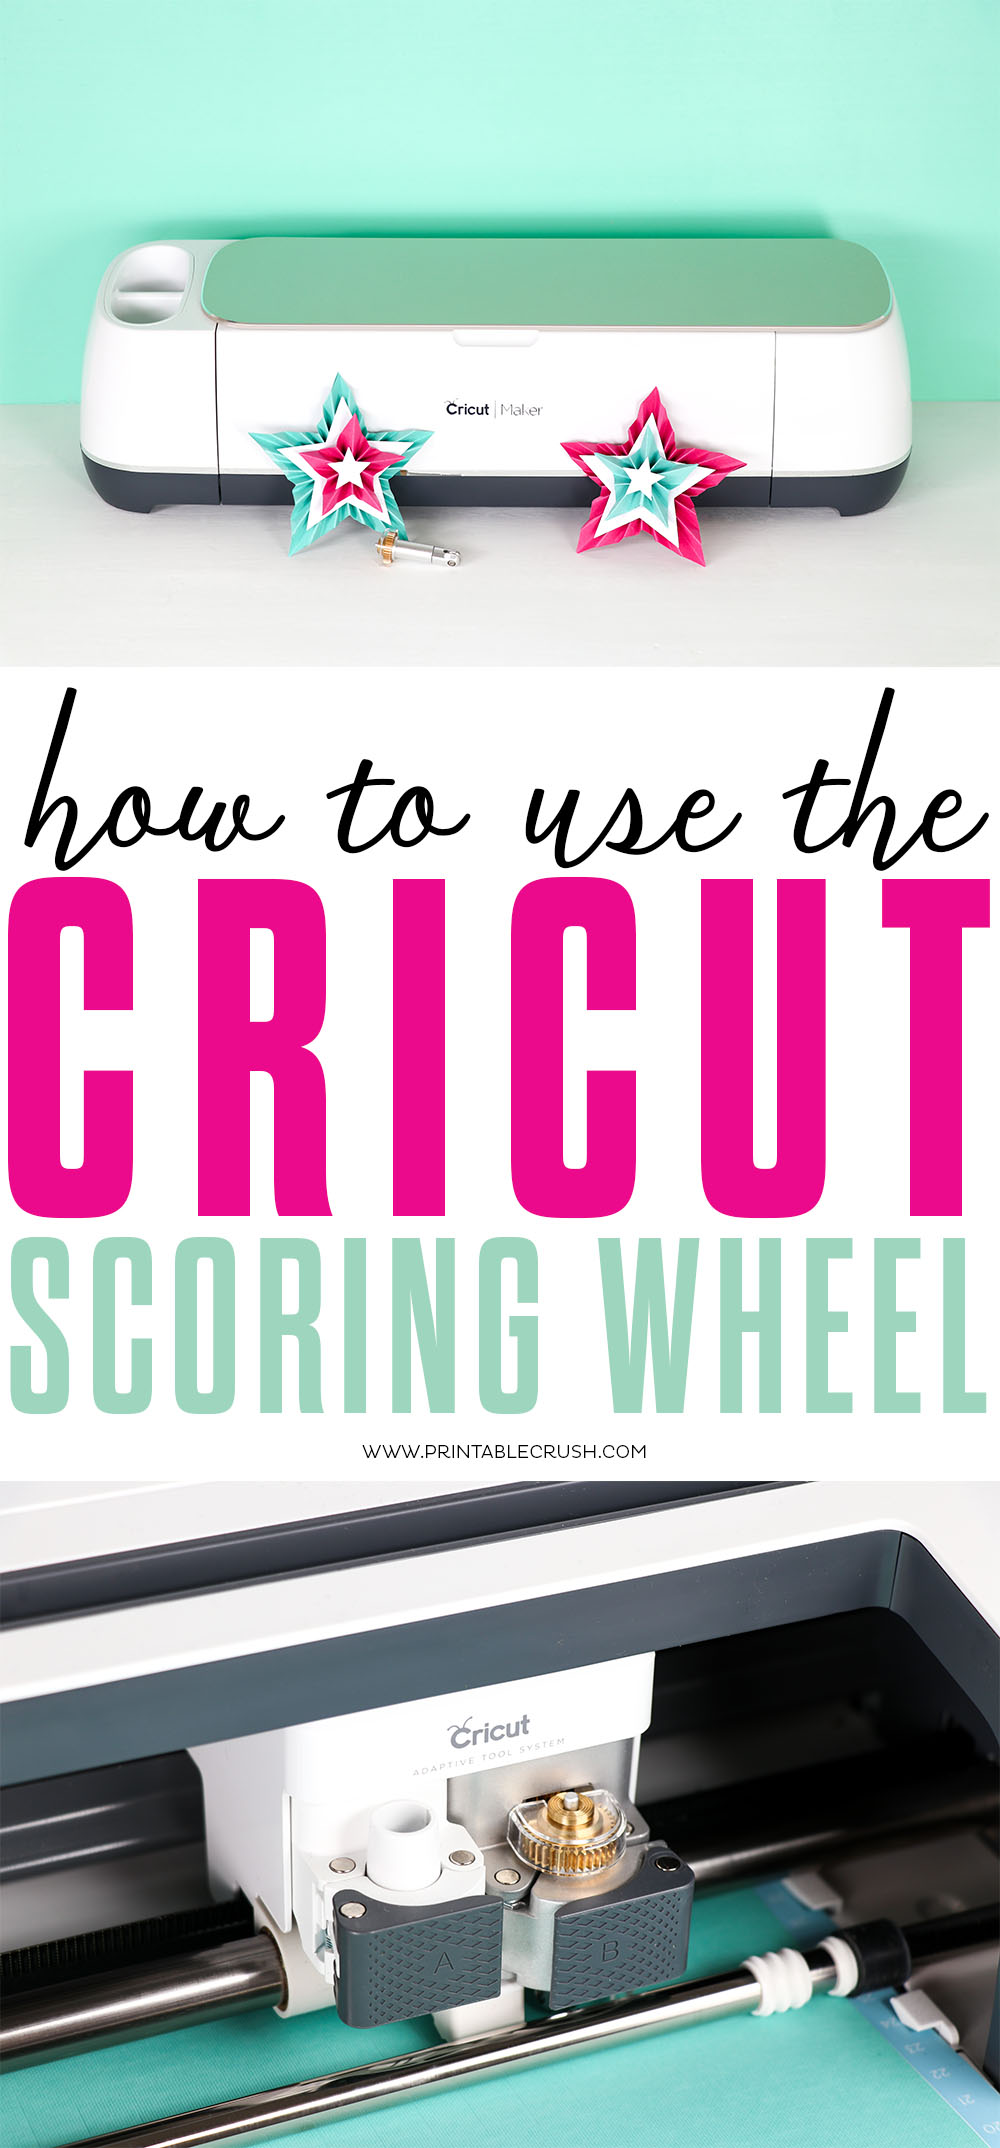 Learn how to use the Cricut Scoring Wheel on the Cricut Maker! Probably the easiest Cricut tutorial ever! #cricutscoringwheel #cricutmaker #cricutmakertutorial #cricutcraft #papercraft #cricutpapercraft #cricutmade #sayitwithcricut #cricutdesignspace